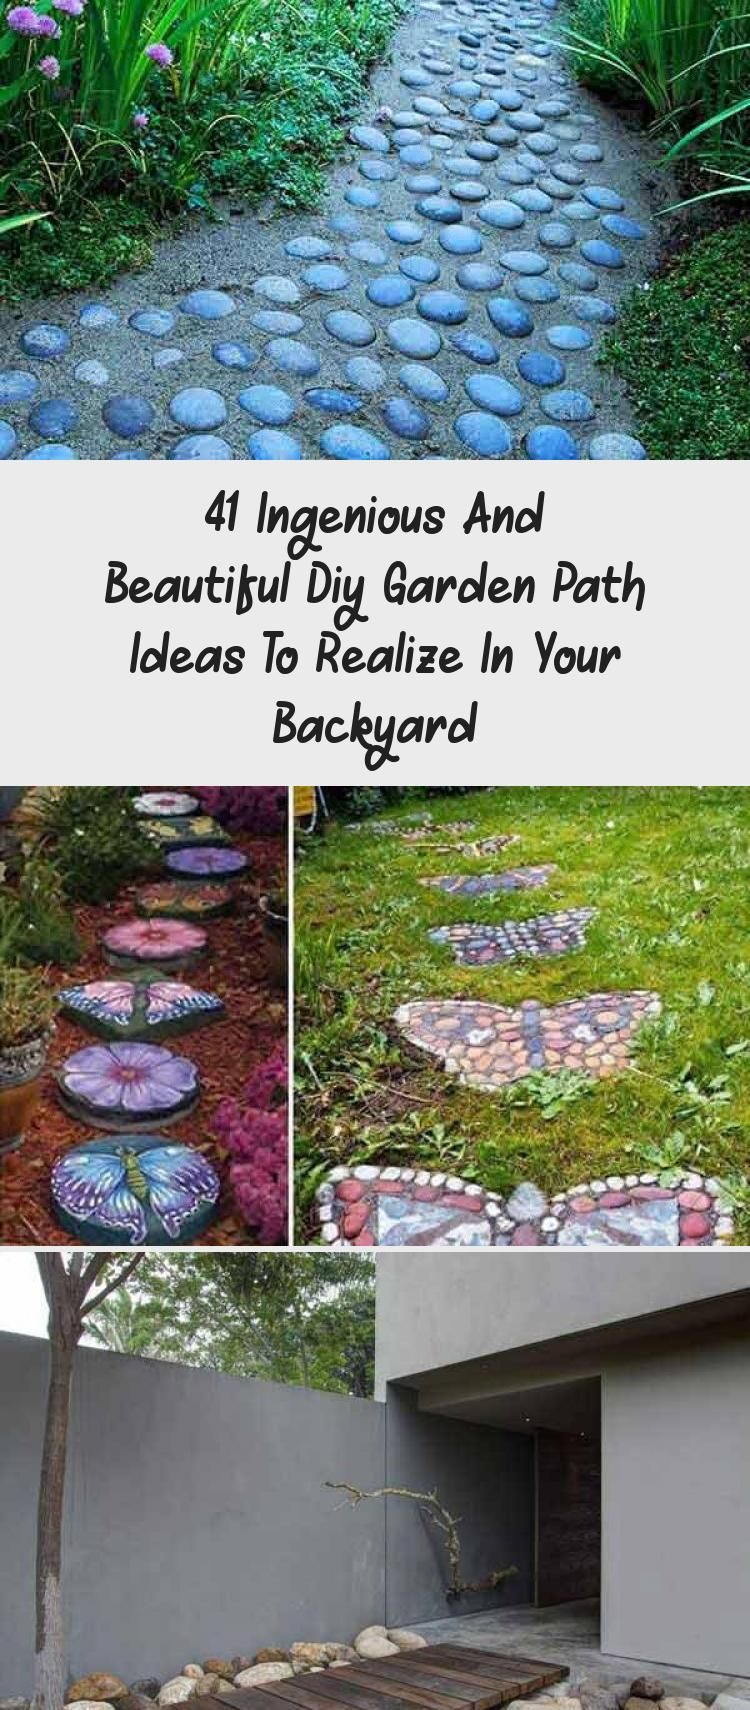 Photo of 41 Ingenious And Beautiful Diy Garden Path Ideas To Realize In Your Backyard – Backyard İdeas